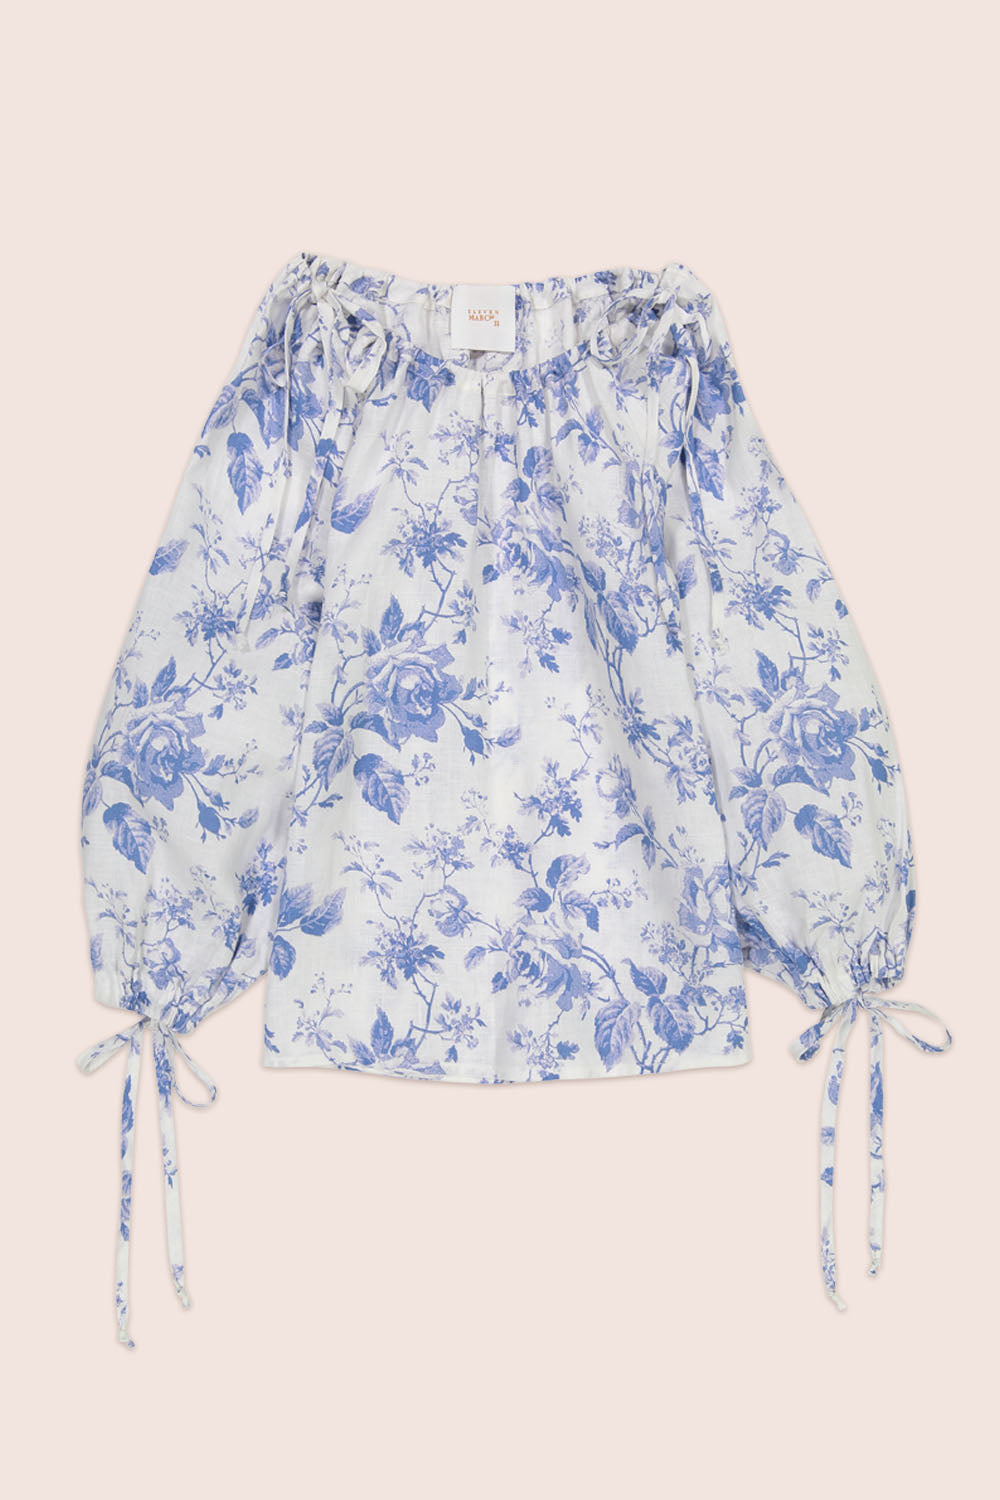 French Rose Blouse in White with Blue